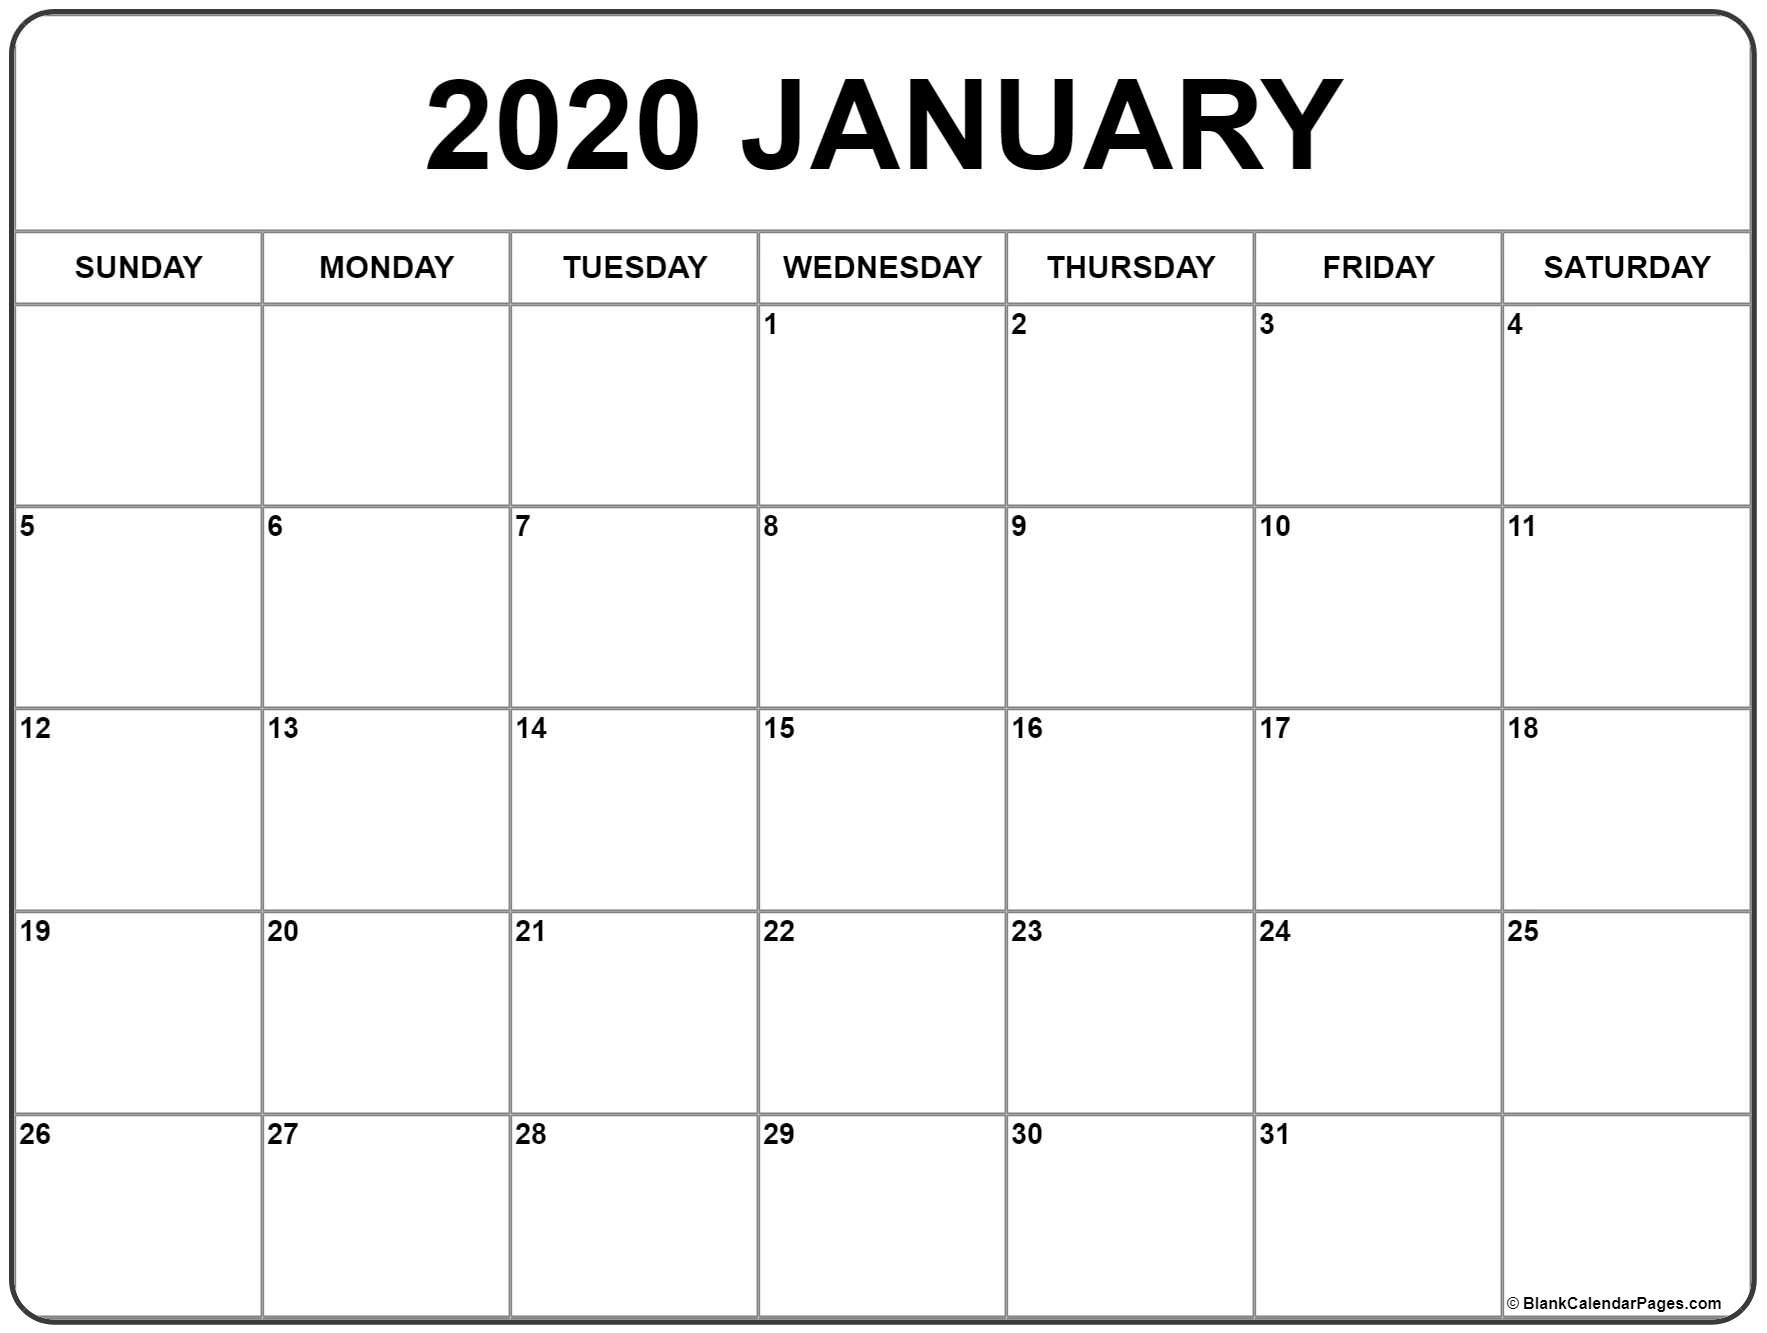 January 2020 Calendar | Free Printable Monthly Calendars within January 2020 Printable Calendar